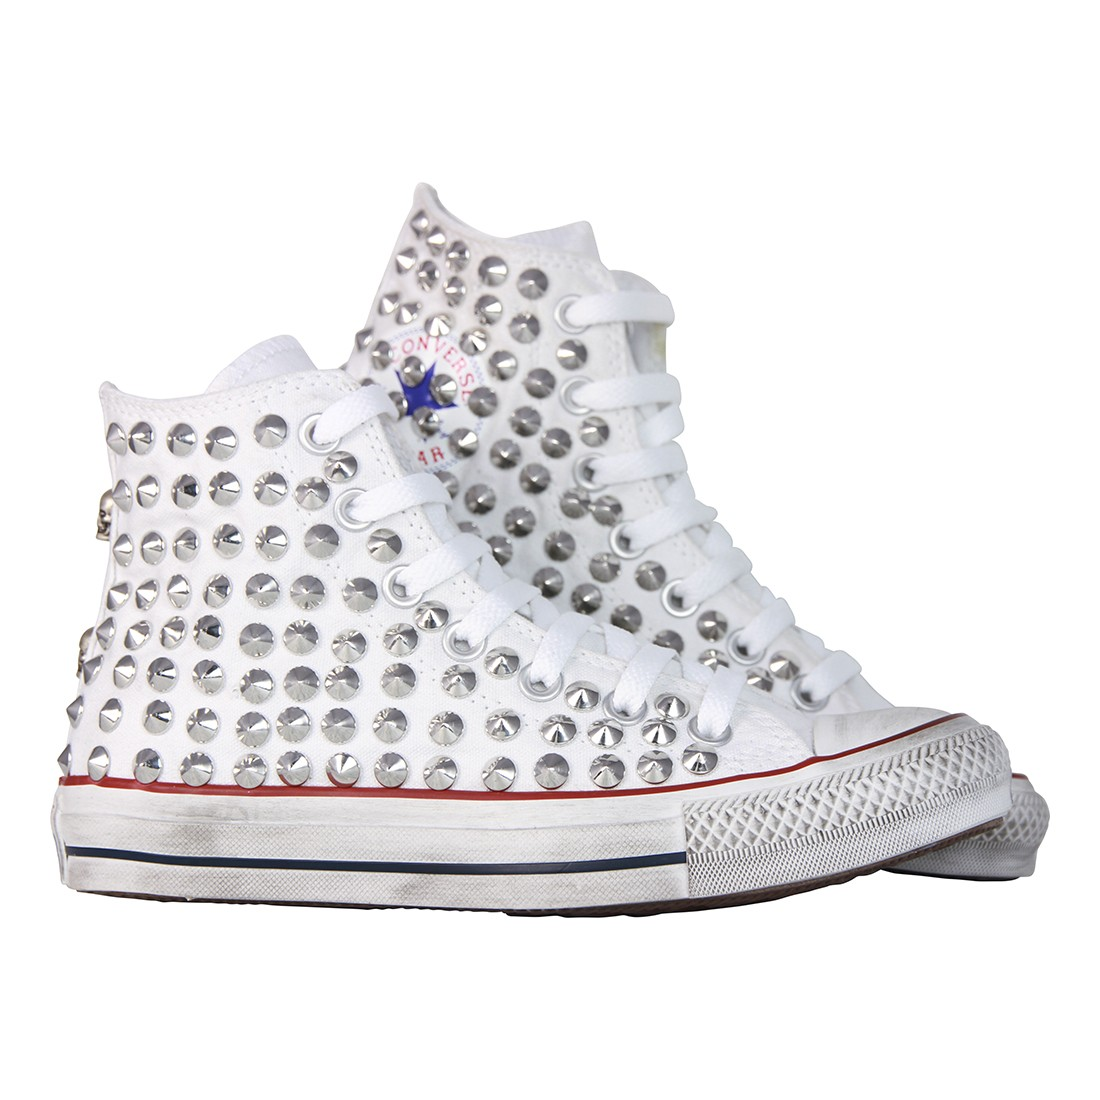 converse all star bianche con borchie